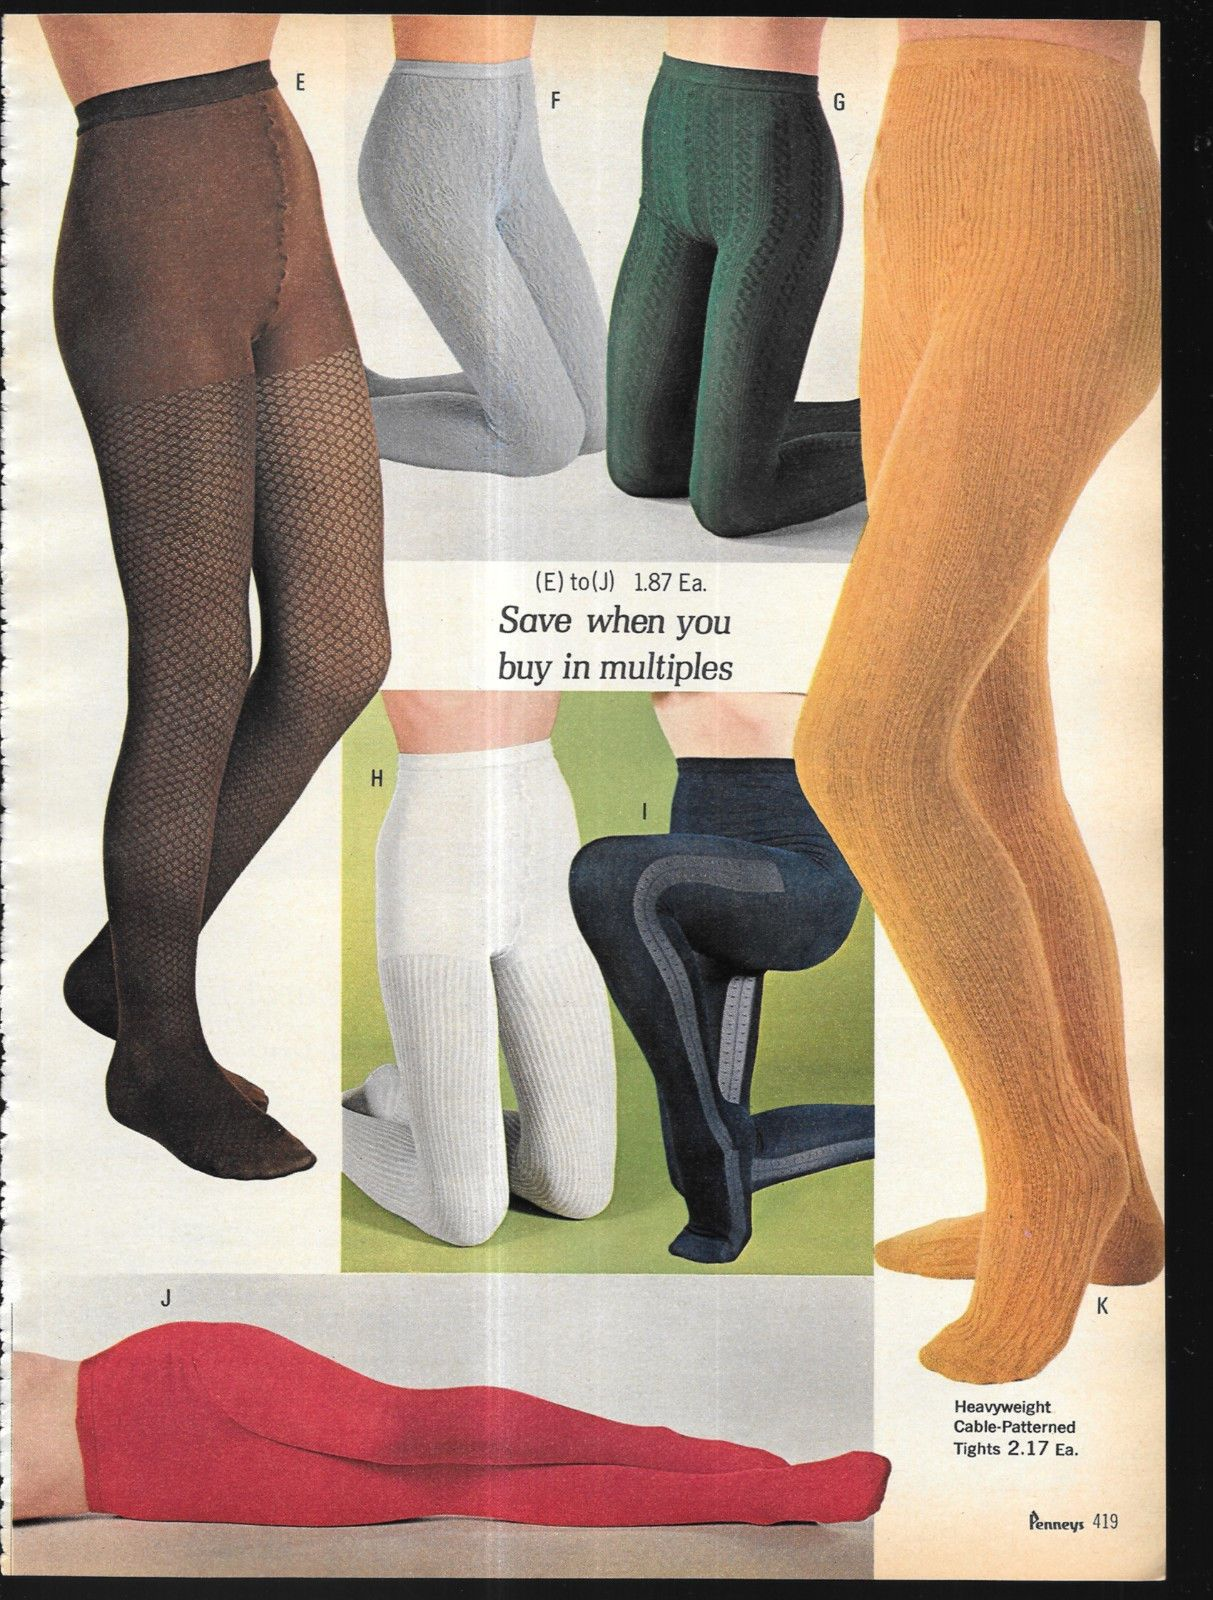 Think, leggs pantyhose catalog think, what